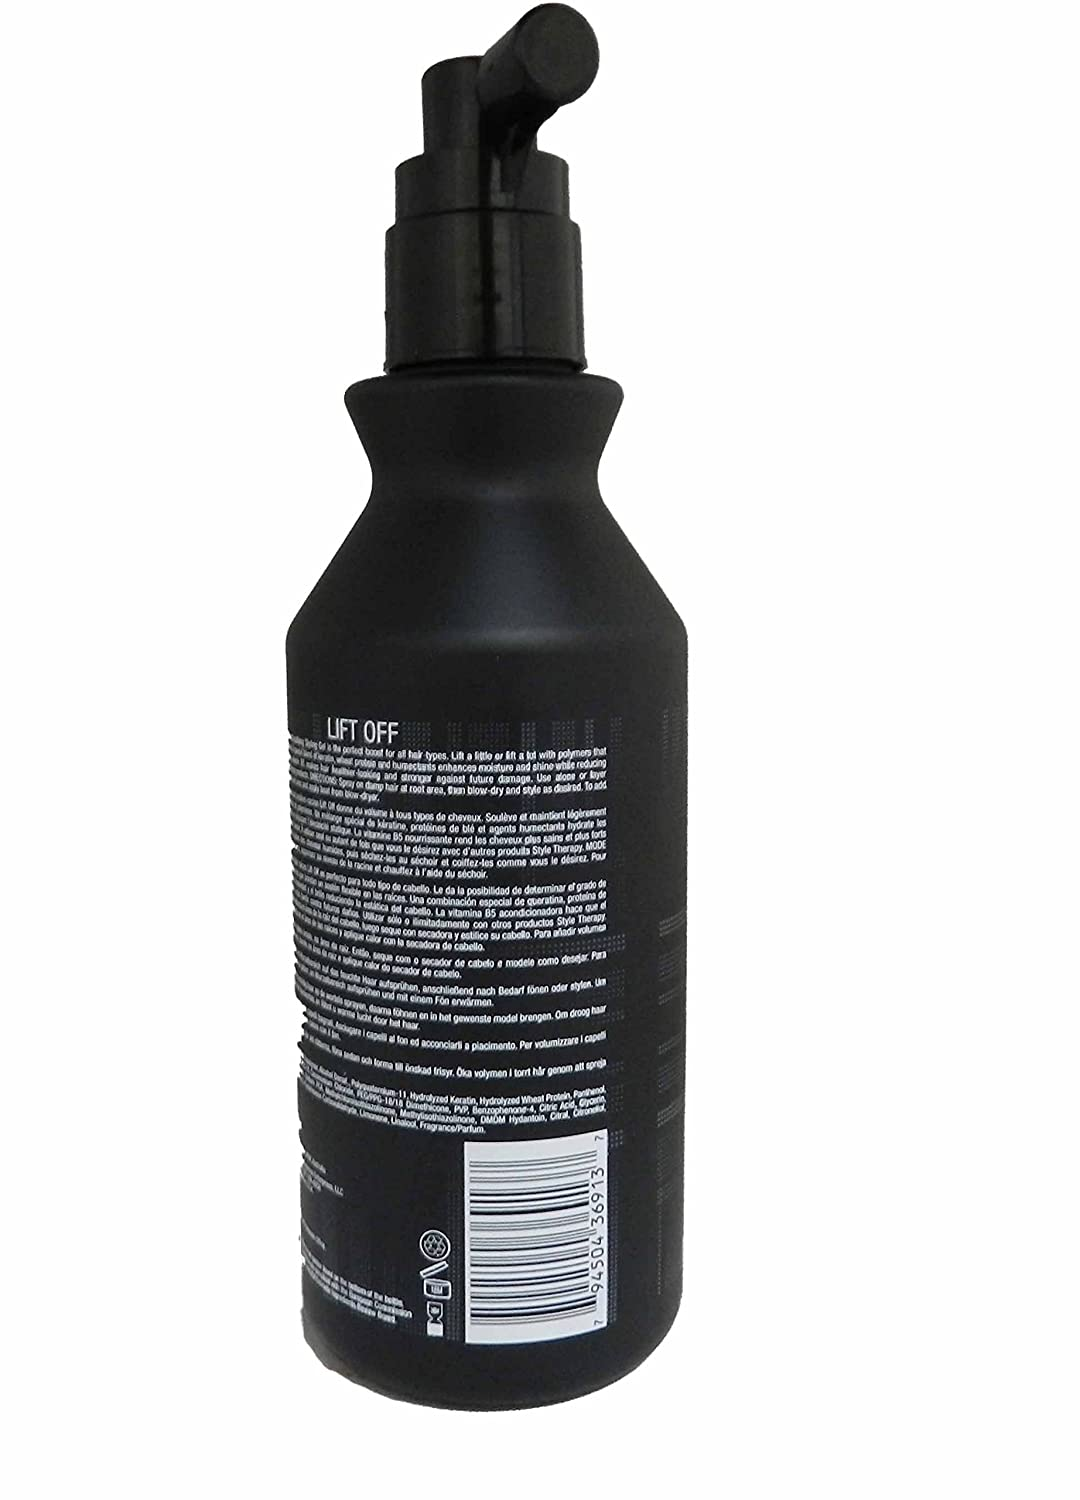 Amazon.com : Keratin Complex Syle Therapy Lift Off Root Amplifying Styling Gel 8 fl. oz. : Beauty